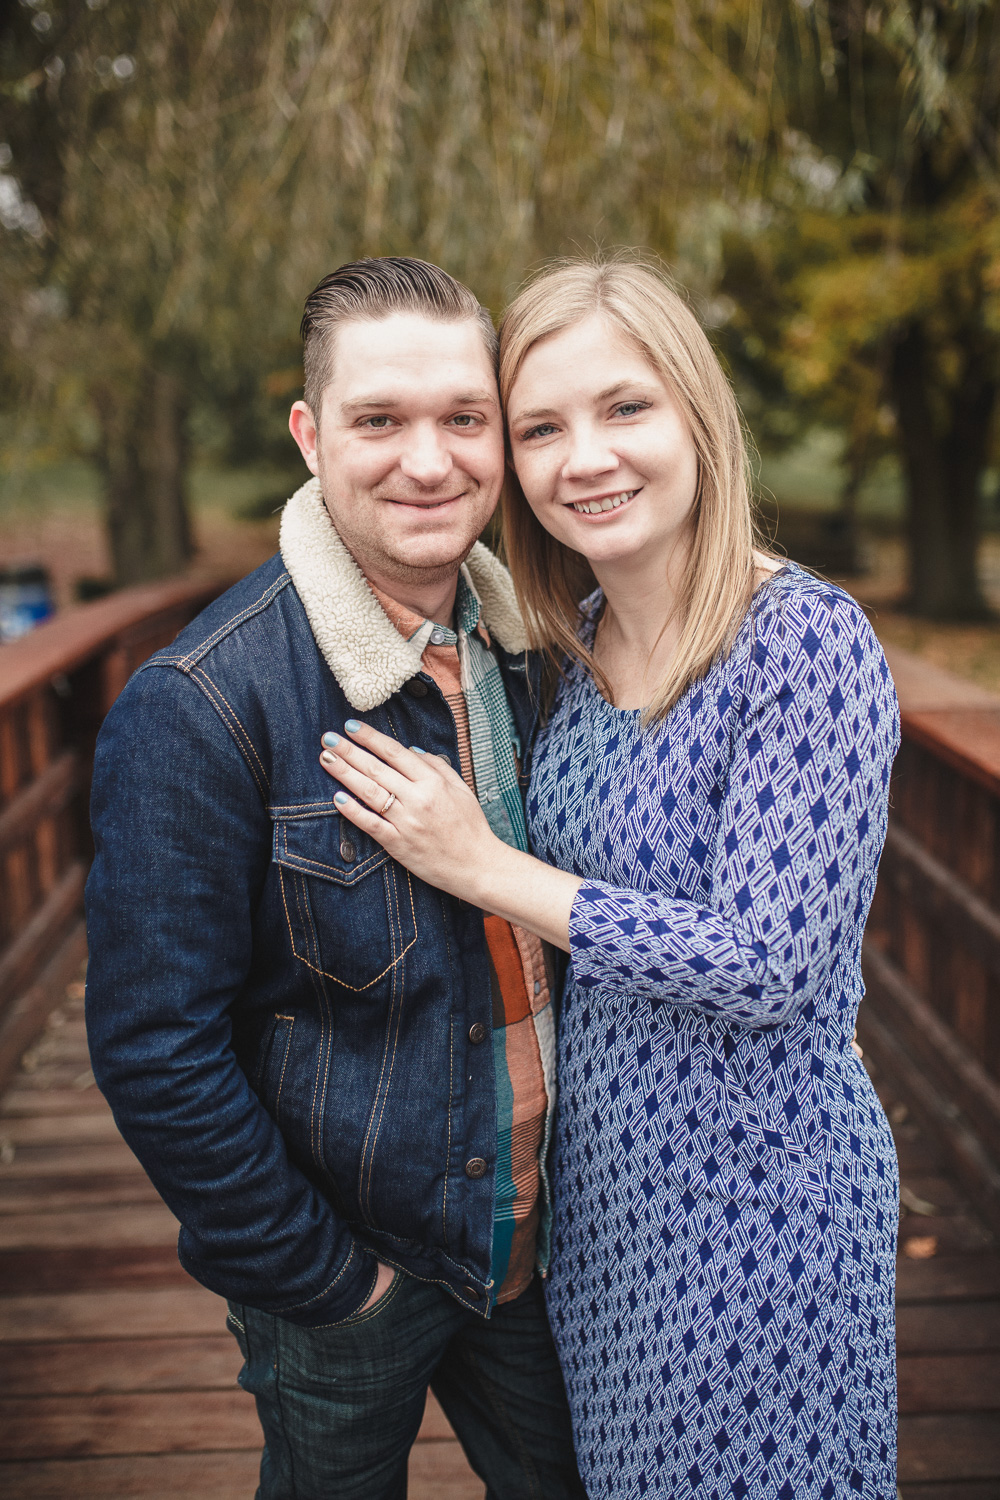 Kate_Bobby__Engagement_Session_Kansas_City_In_Home_Session_Autumn_Kelsey_Diane_Photography-0670.jpg